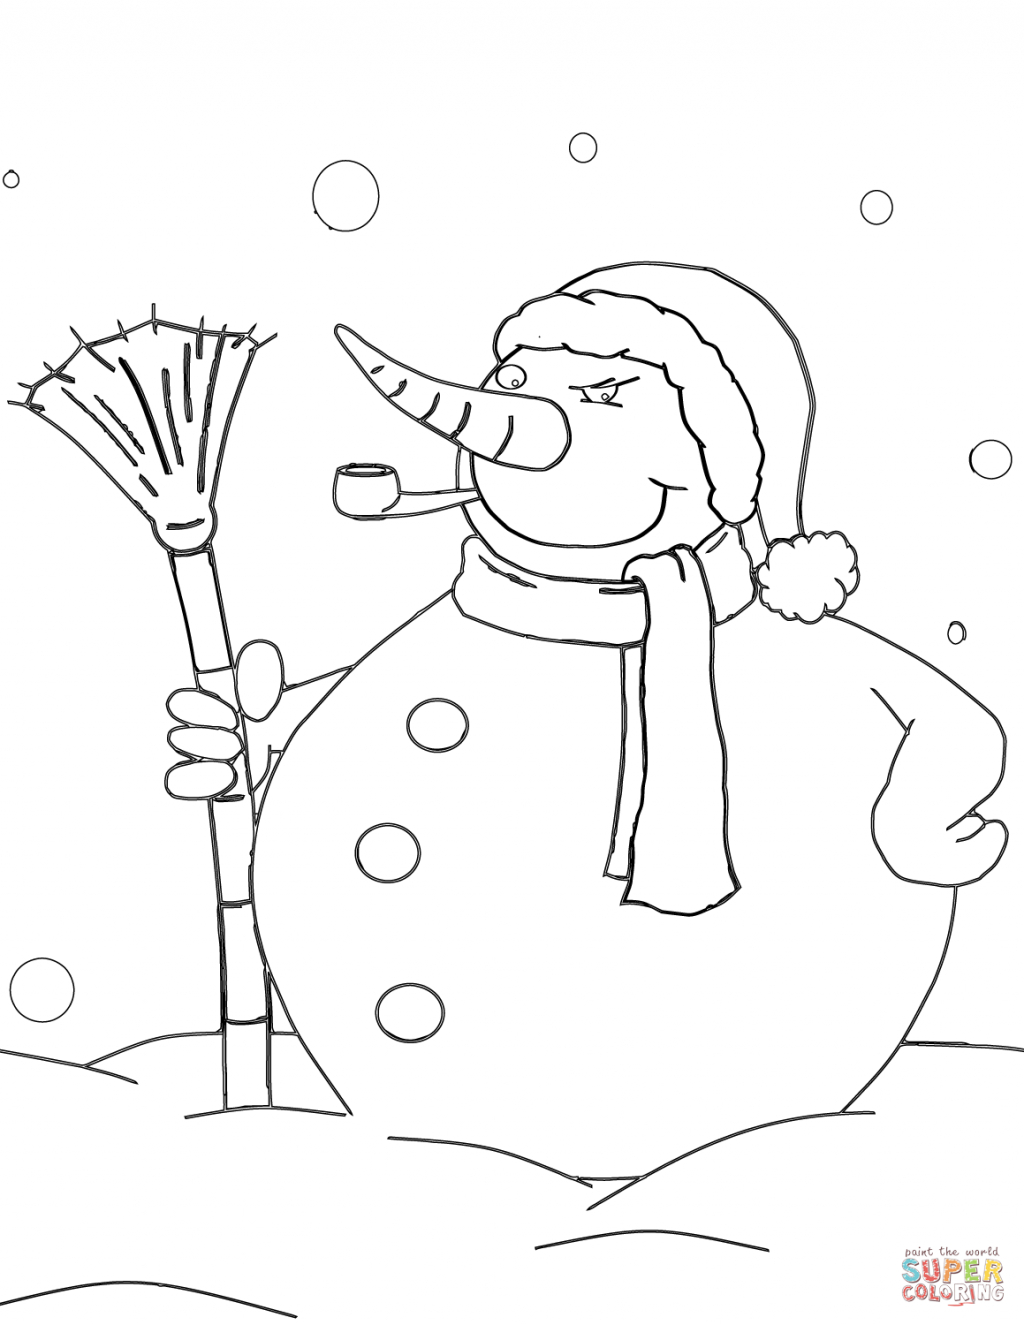 Snowmen Coloring Pages Coloring Book World Snowman Coloring Pages Free With Pipe And